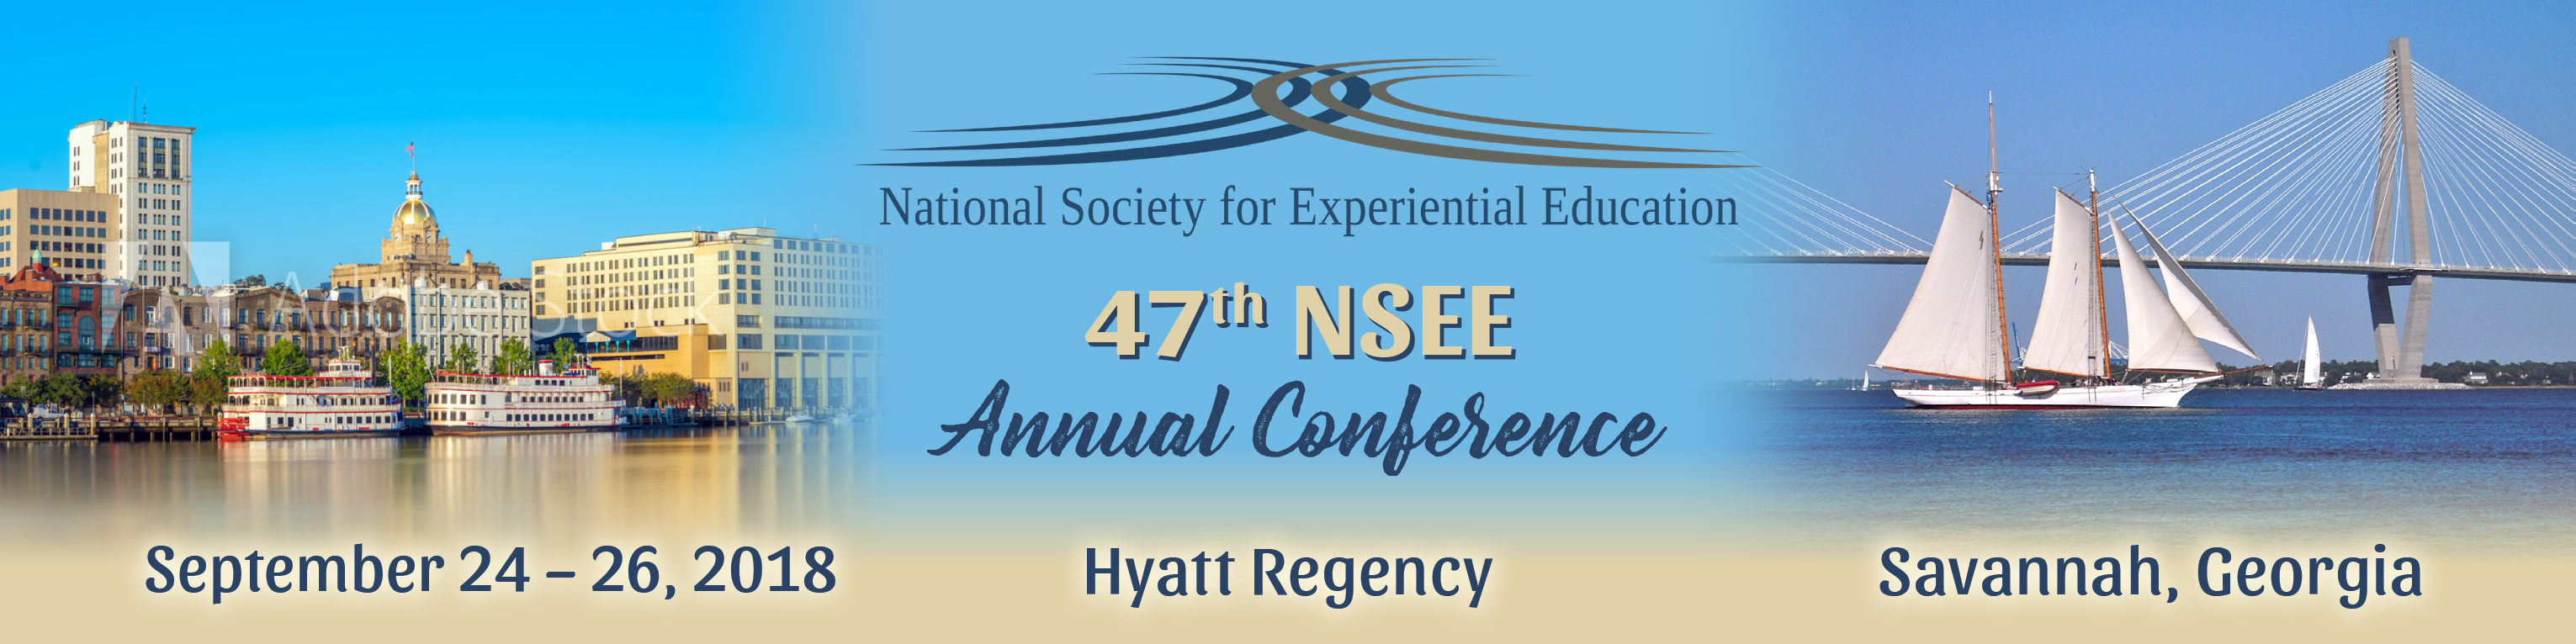 NSEE 2018 Conference Banner